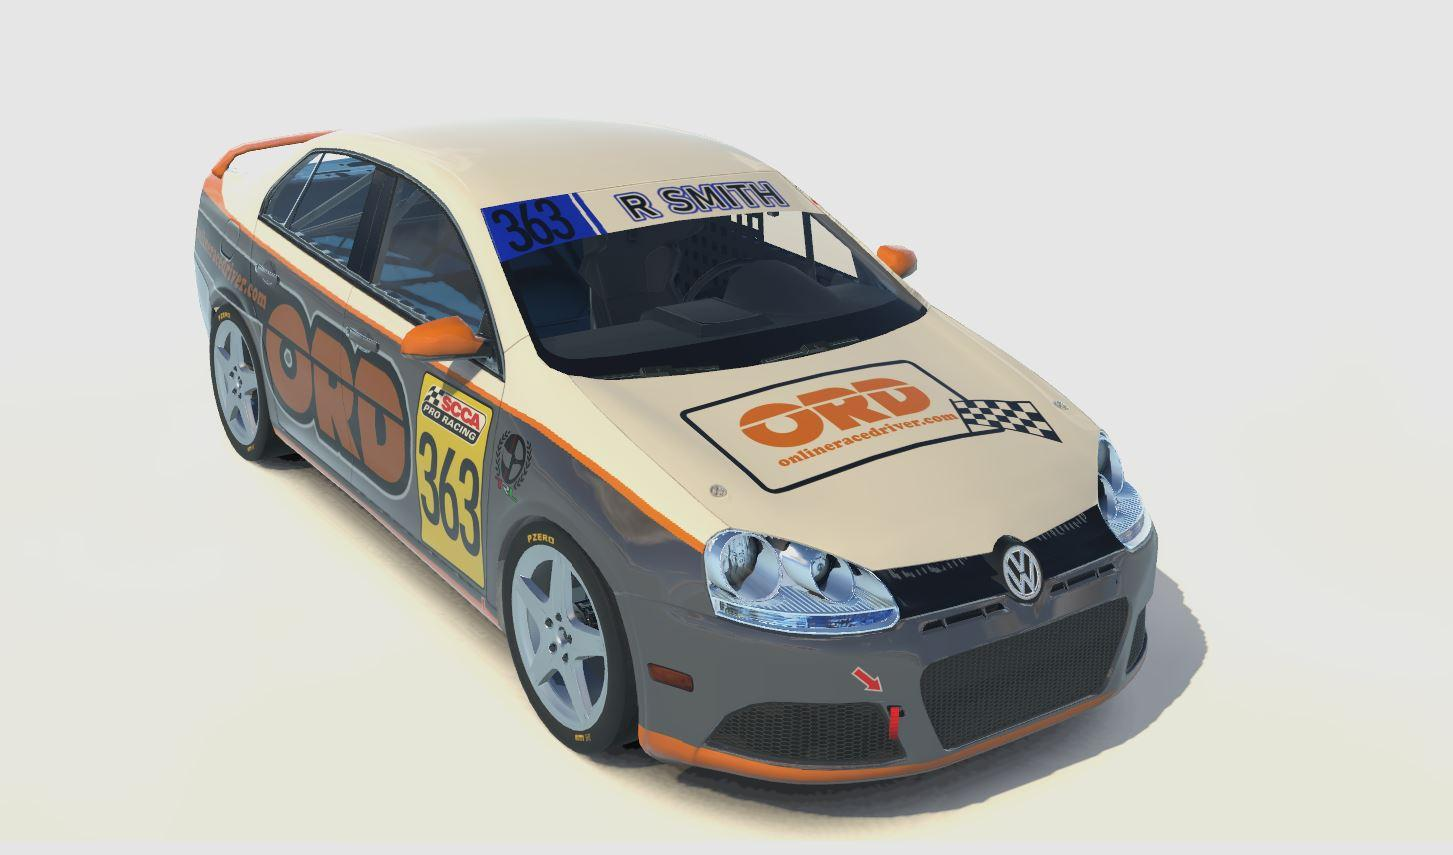 Preview of ORD   Jetta   R Smith by Lee Walker5